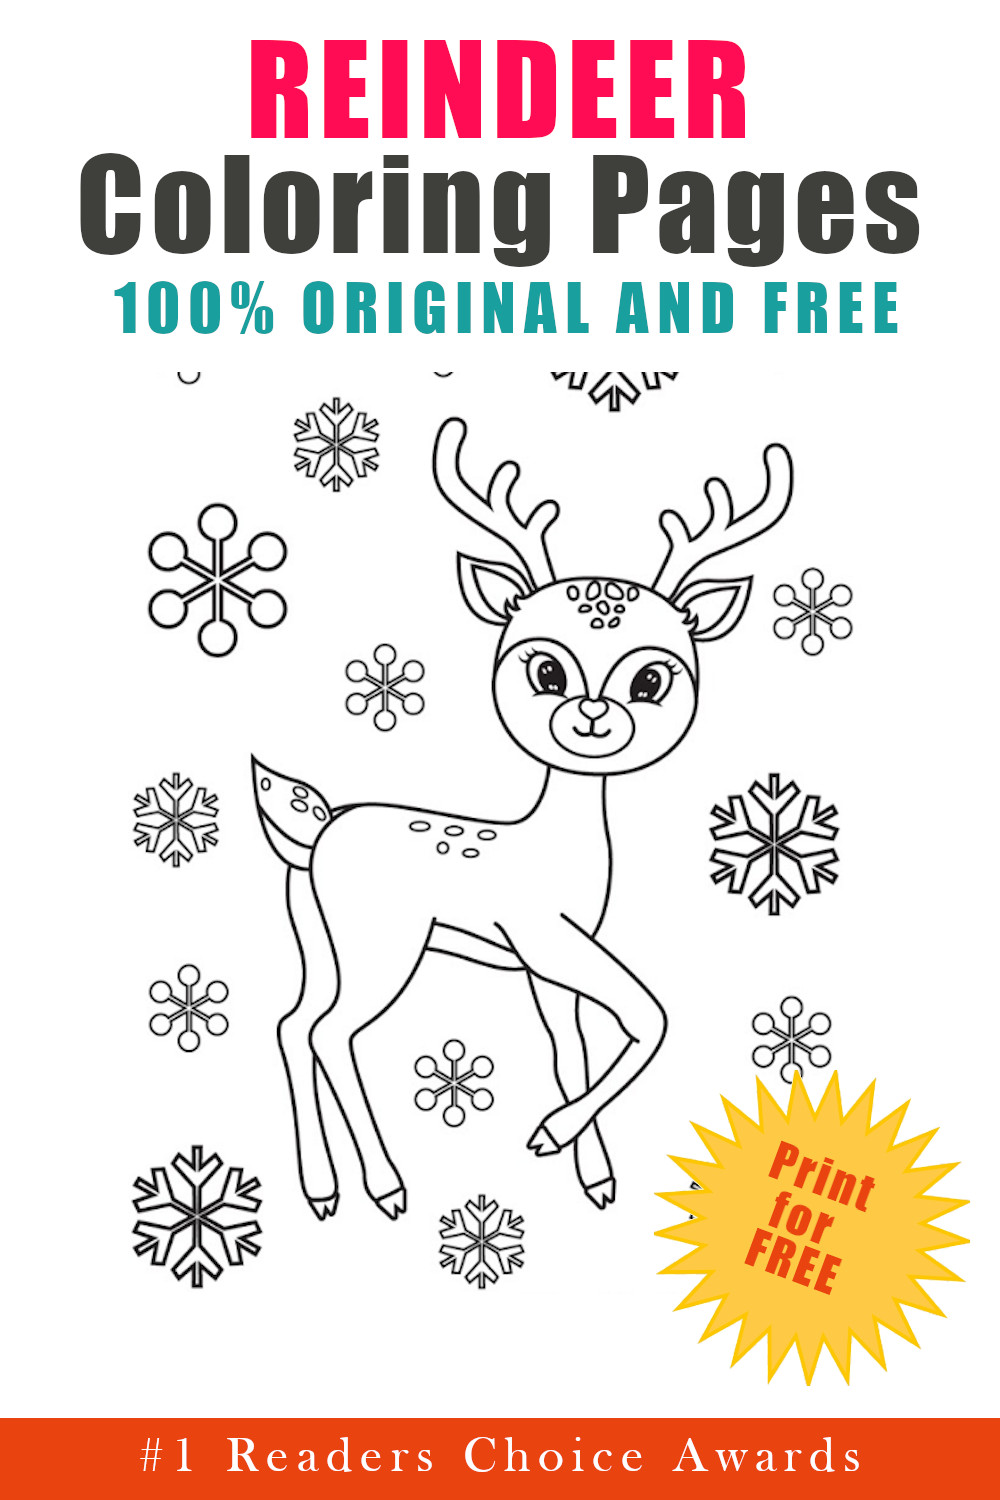 original and free reindeer coloring pages